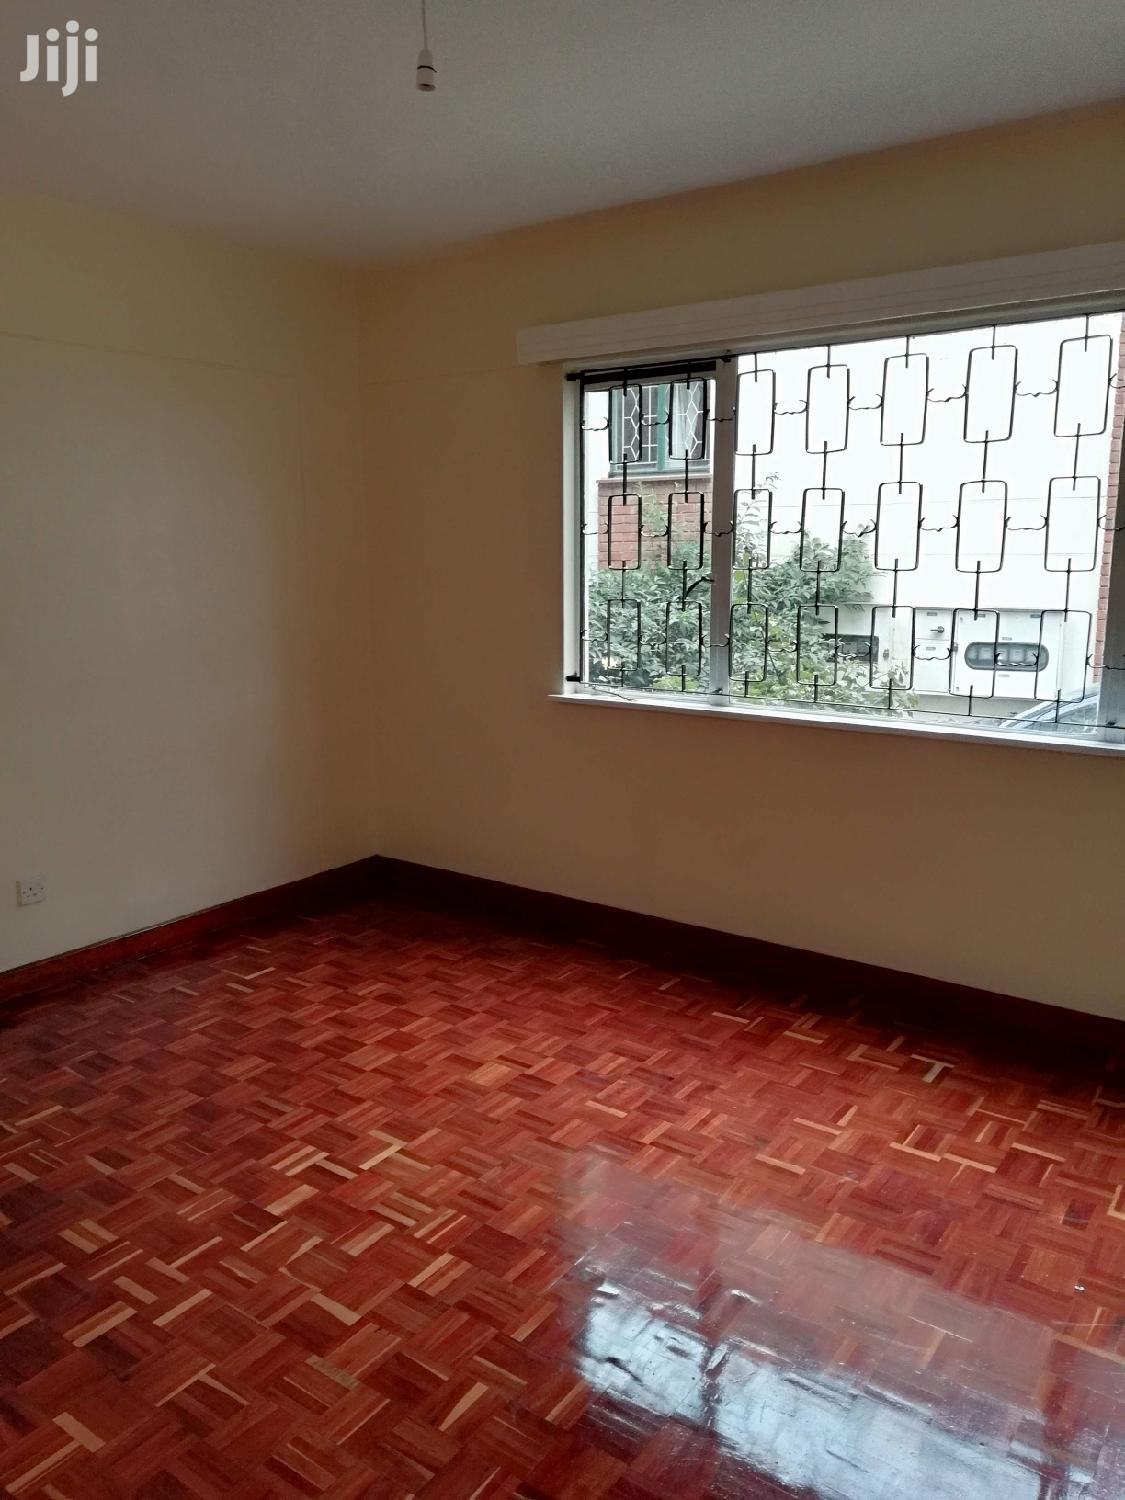 2,3,4brs Old School Apartment With Master Ensuite and Secure | Houses & Apartments For Rent for sale in Kilimani, Nairobi, Kenya